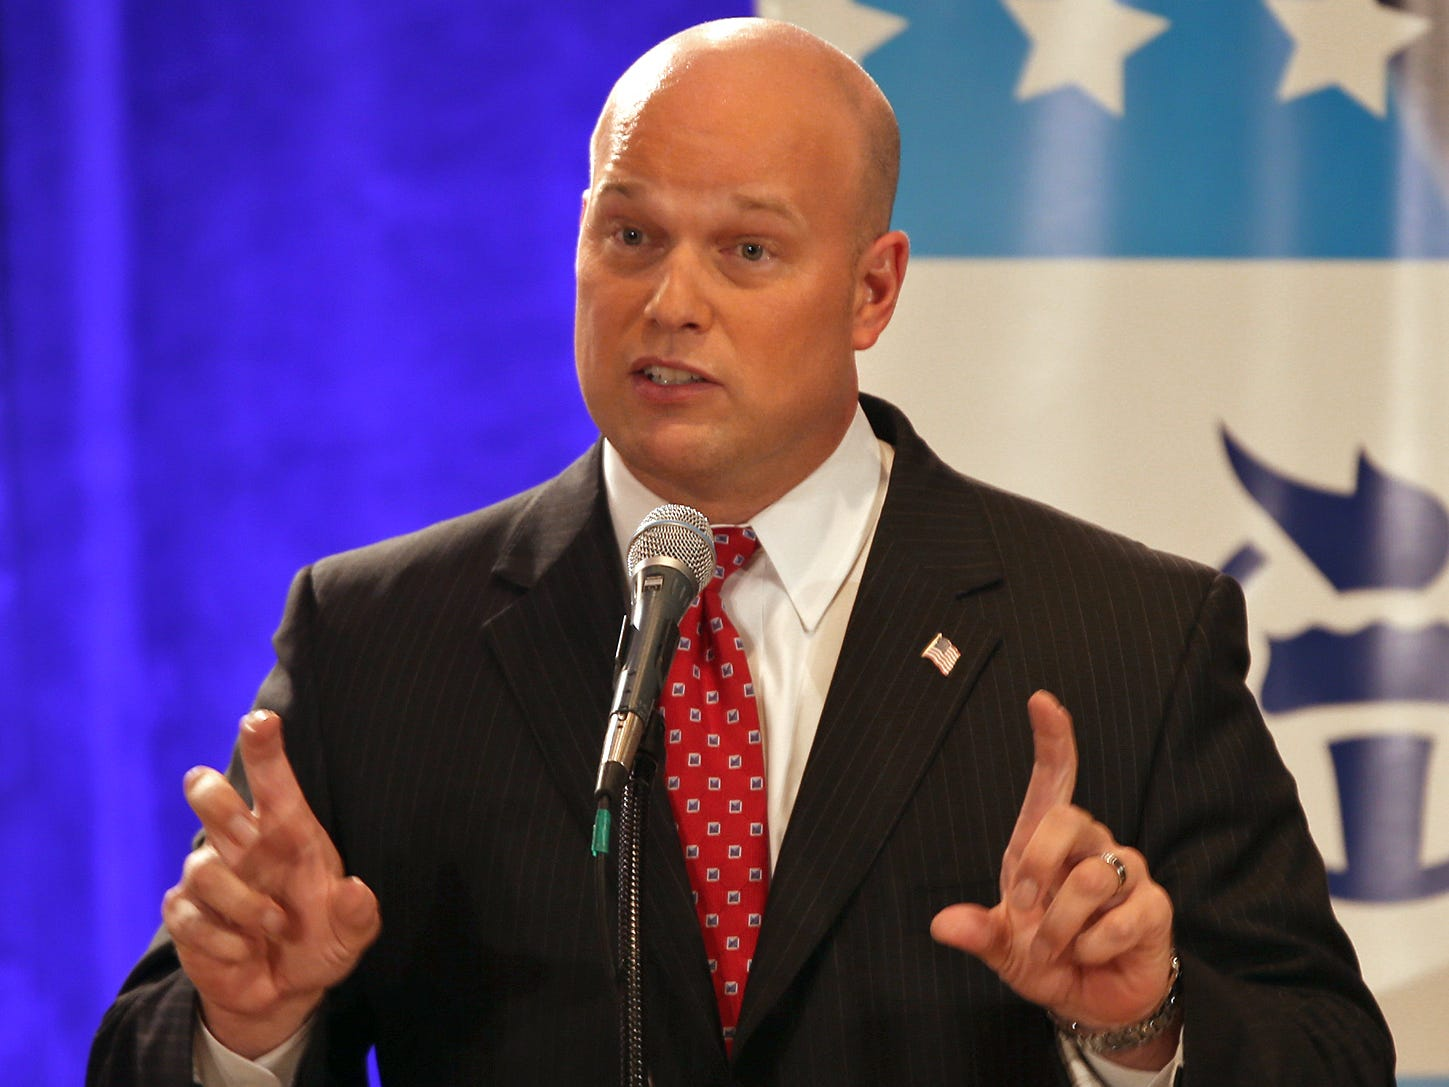 From October 2013: Matt Whitaker during a debate among Republican candidates for U.S. Senate held at Drake University in Des MOines.